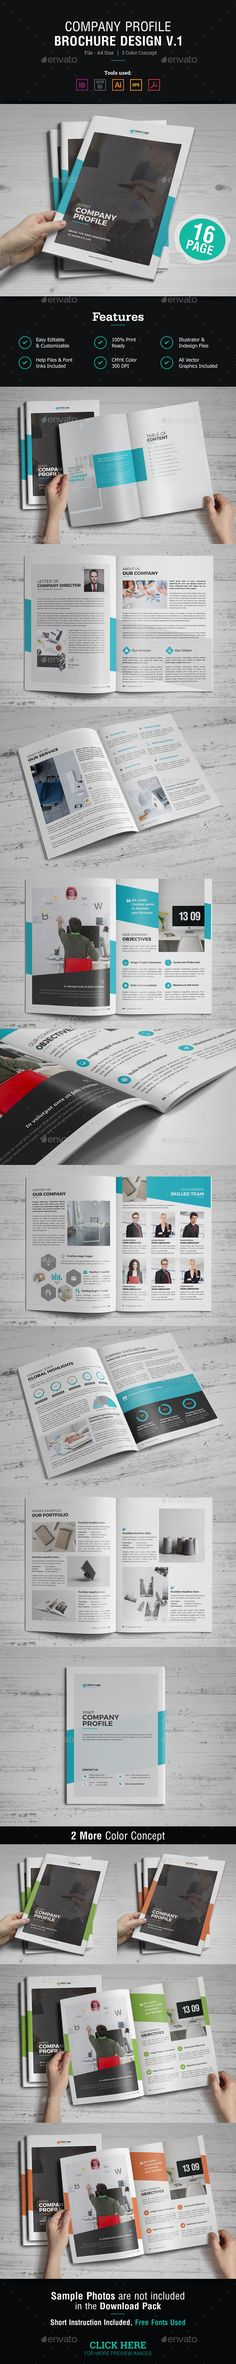 Brochure For Company Profile Ver  FontsLogosIcons